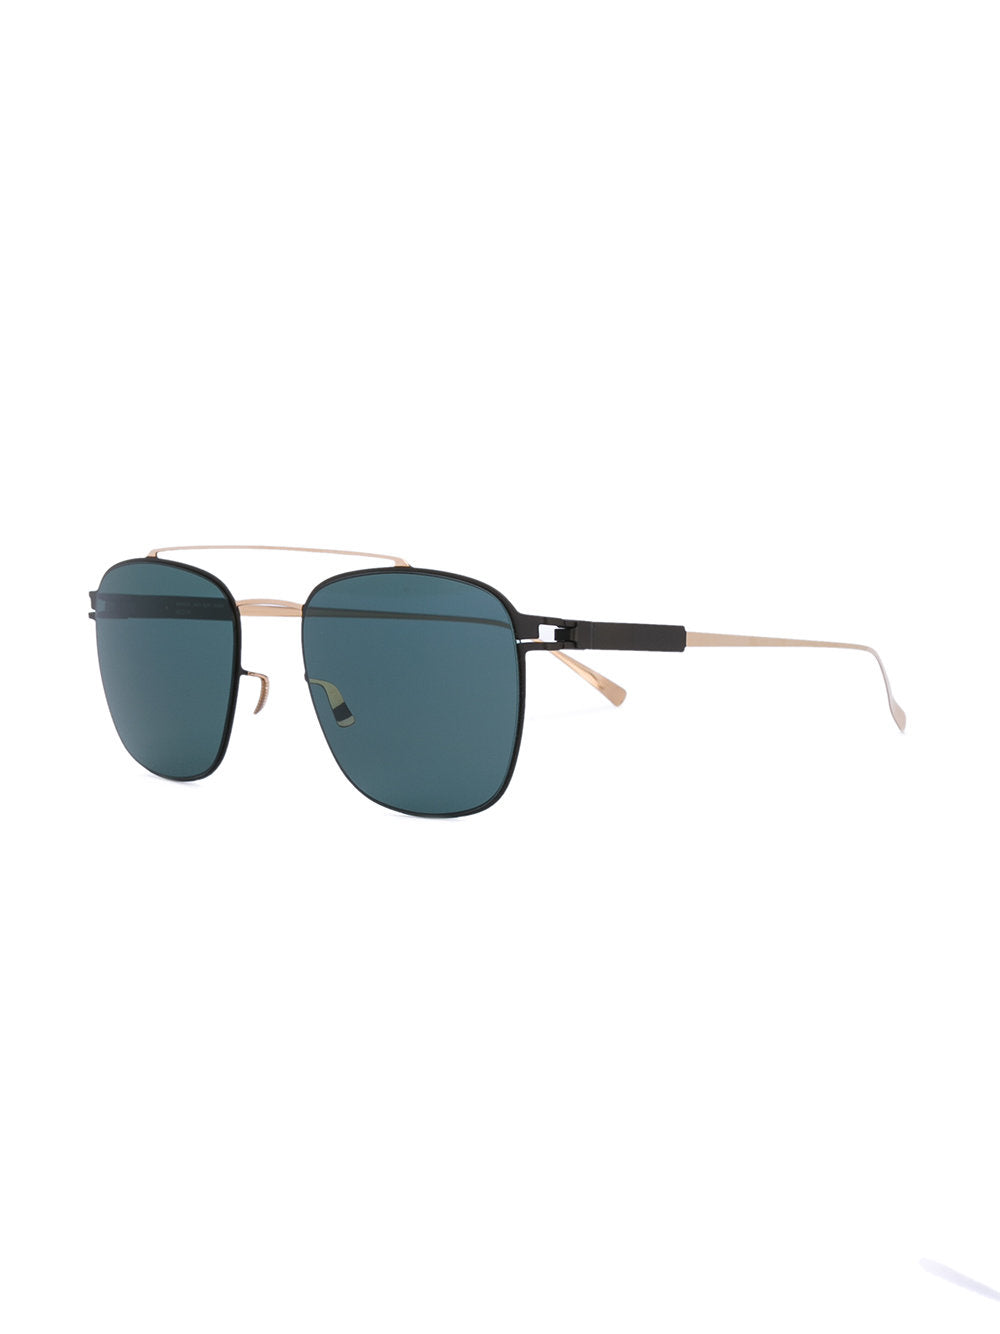 Mens -Dark Blue Sunglasses - THE UNIQUE FIT